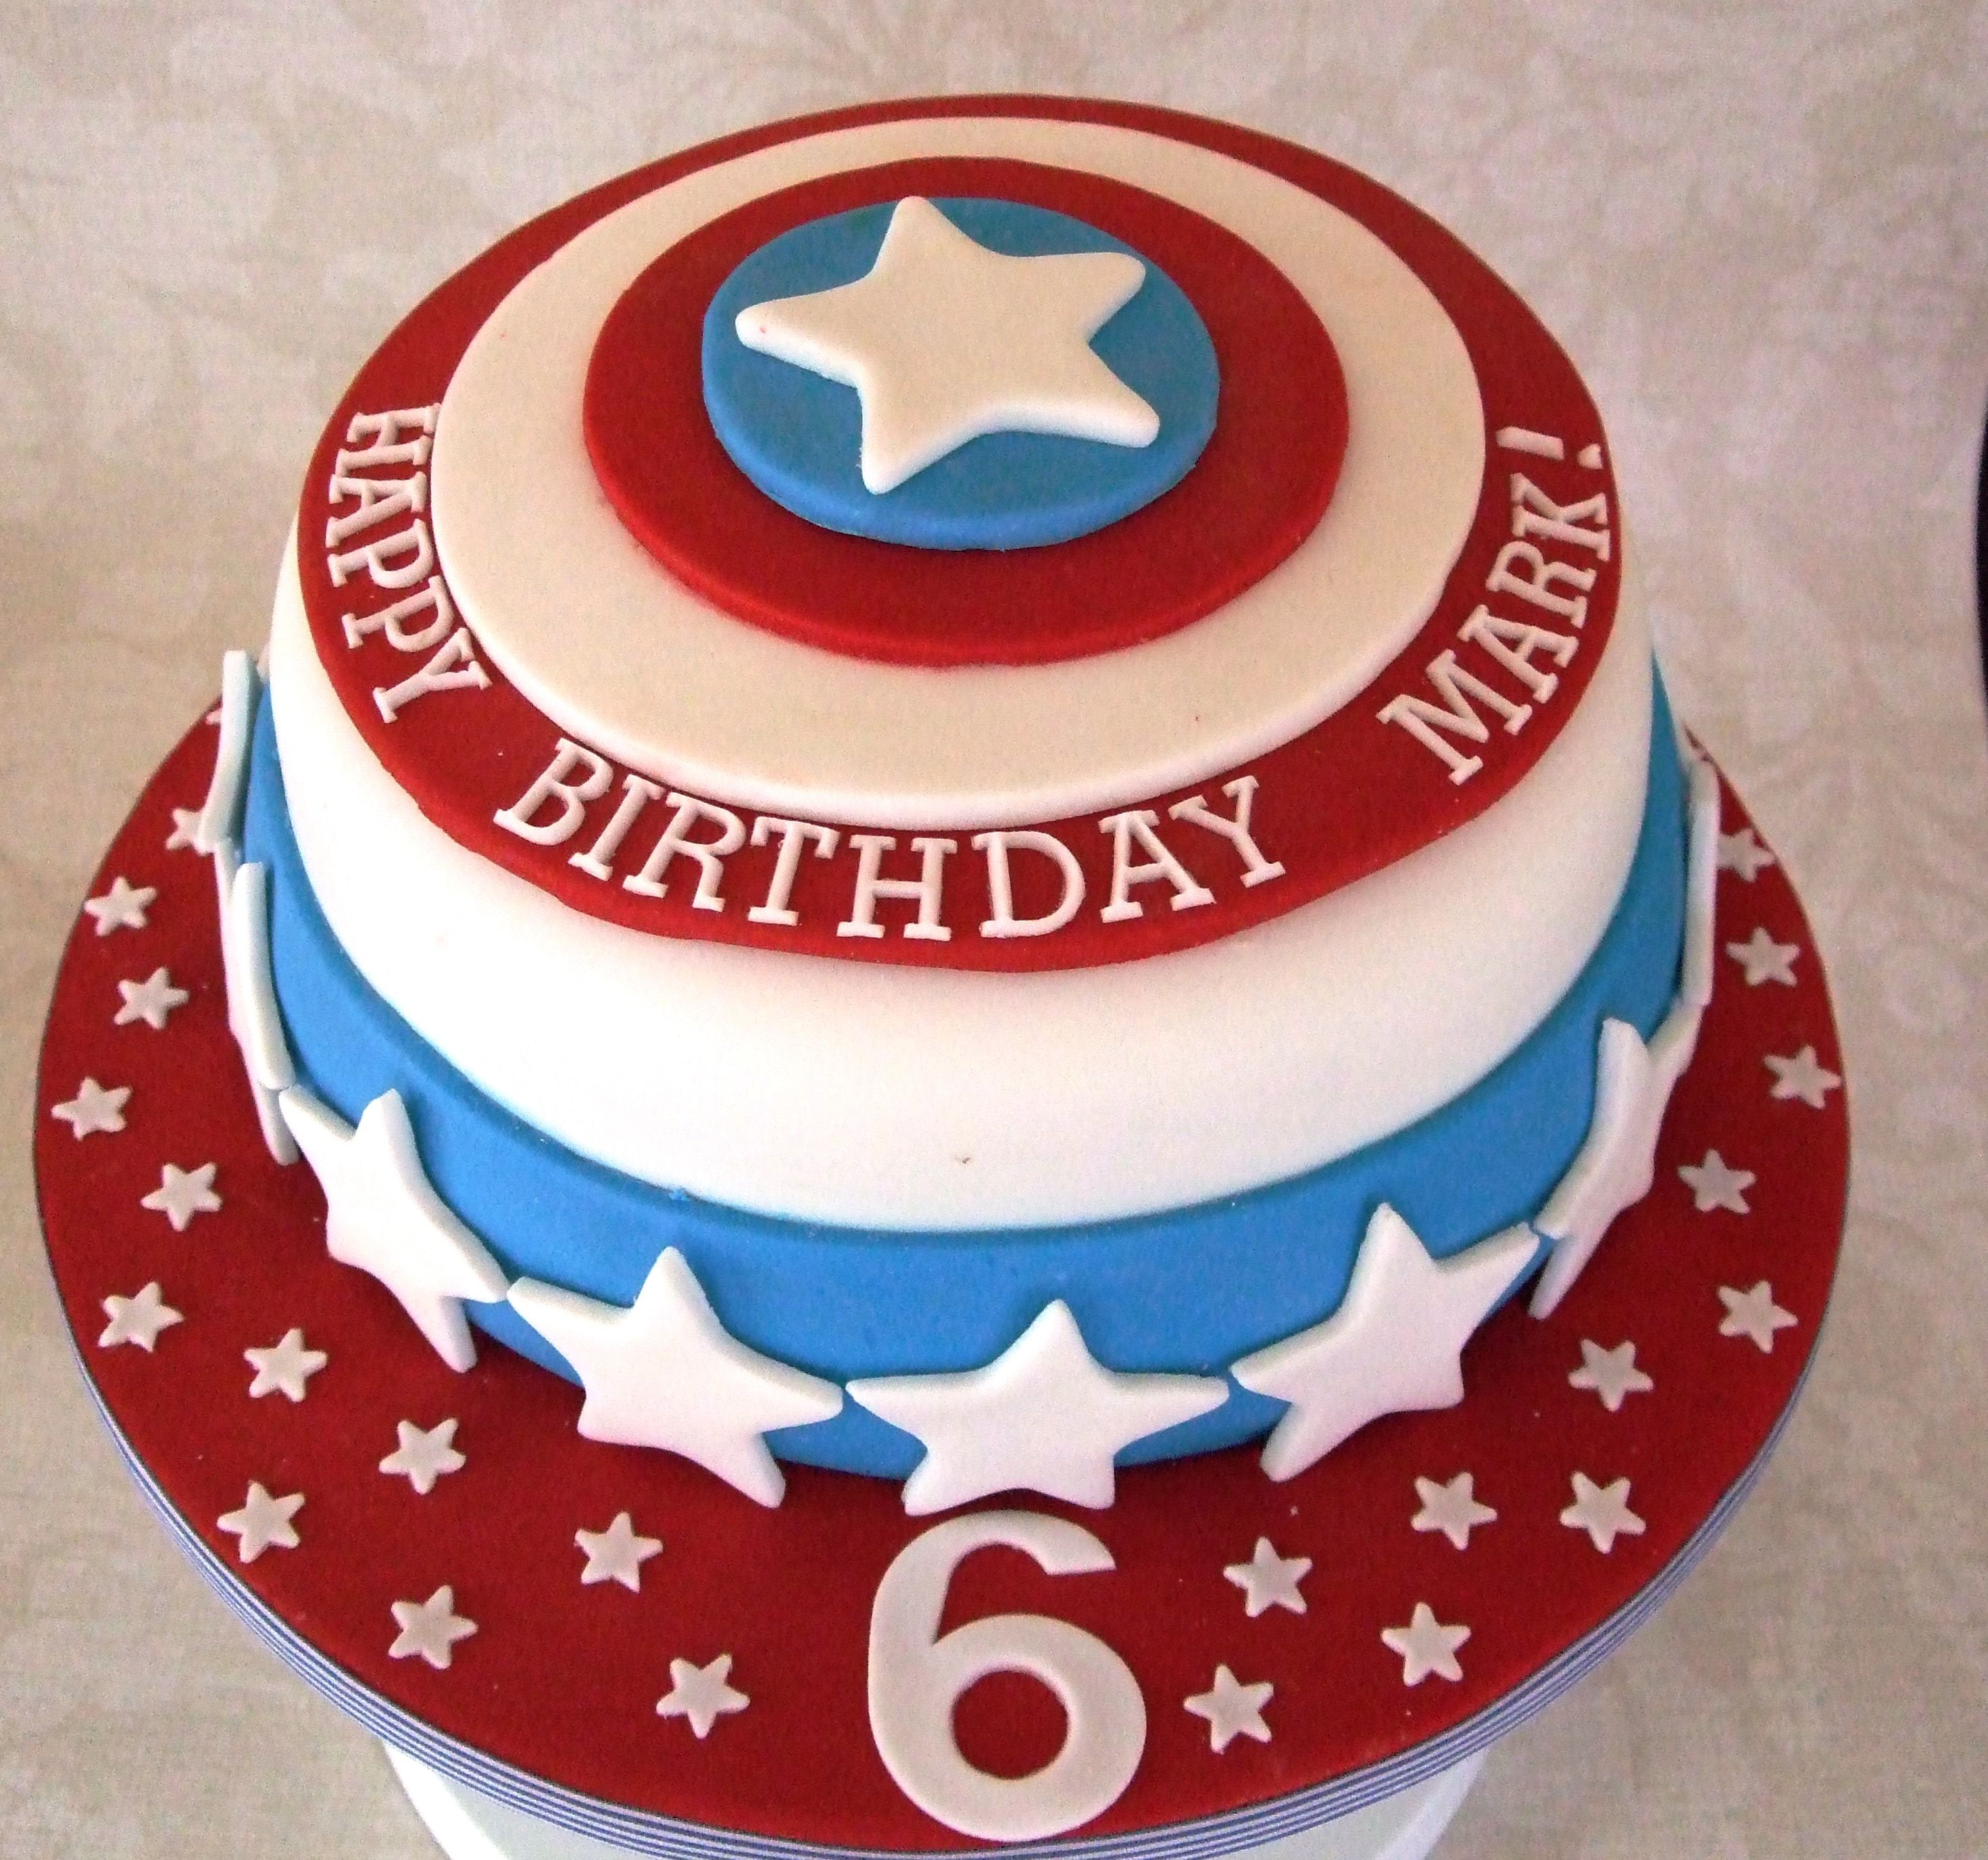 Captain America Bithday Cake With Images Captain America